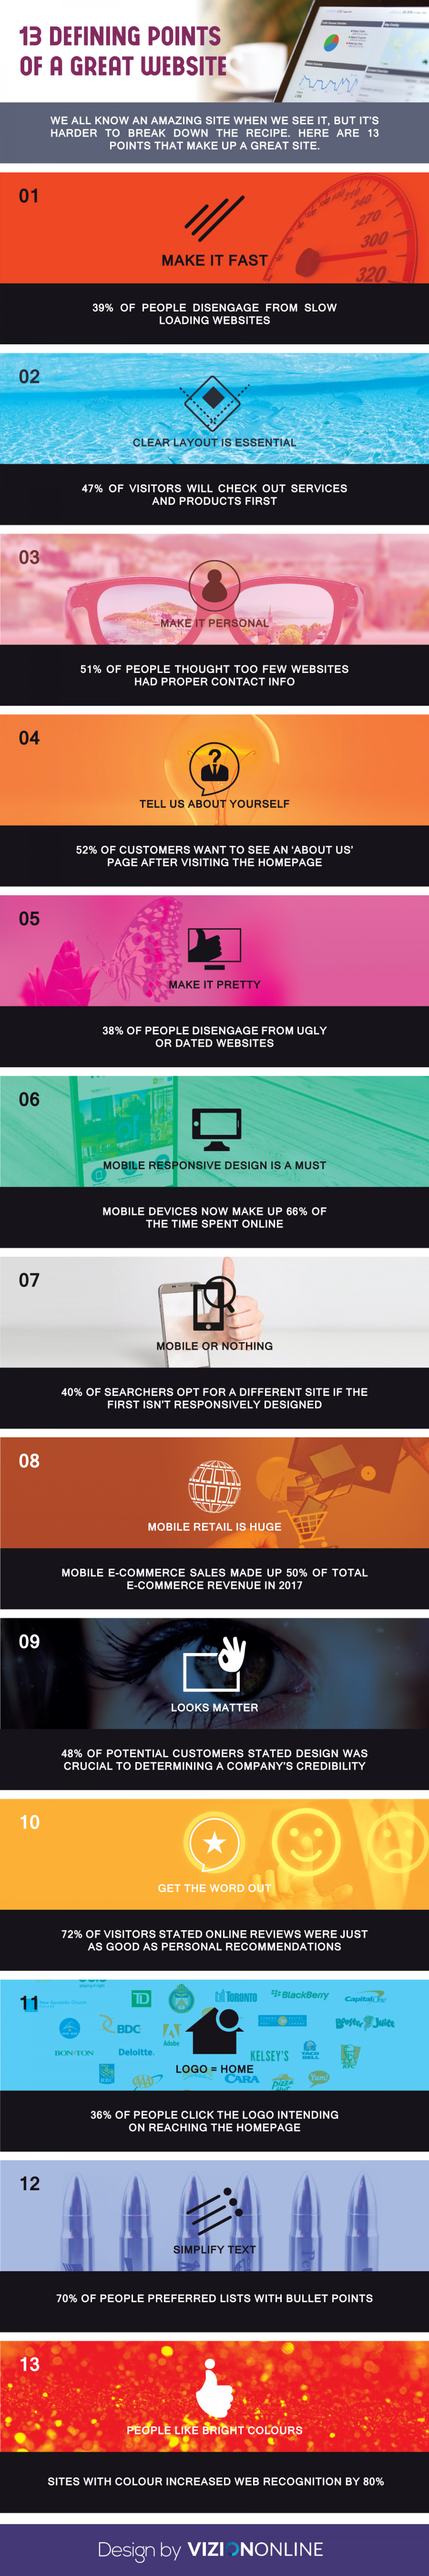 13 Defining Points of a Great Website Infographic